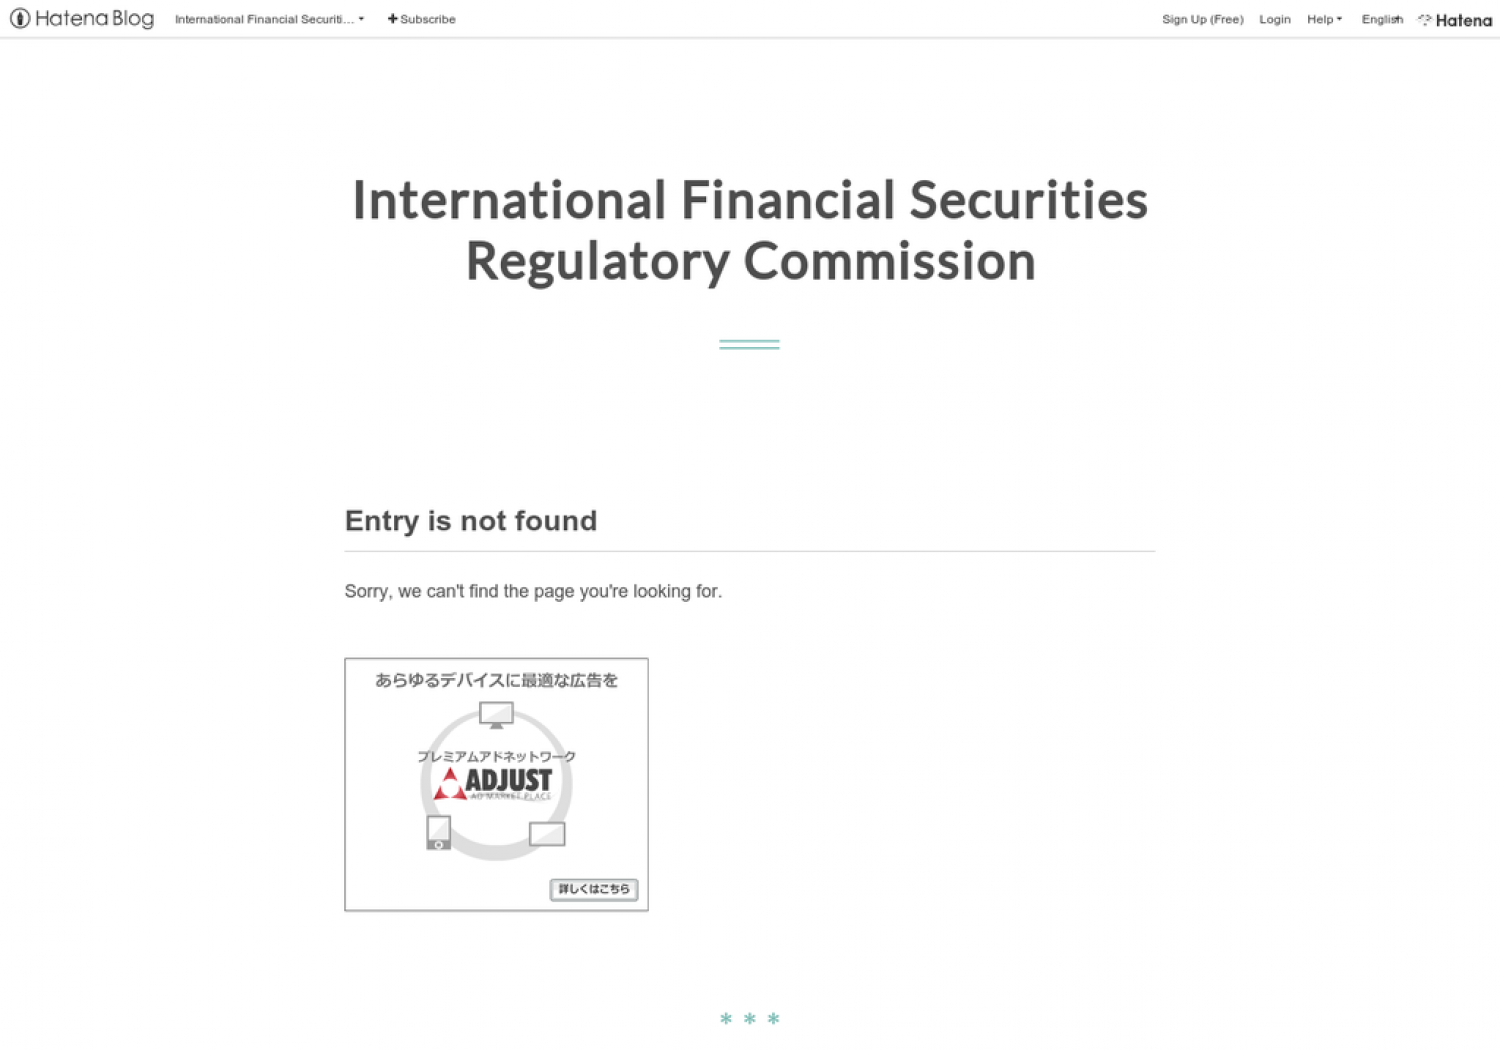 International Financial Securities Regulatory Commission: Accountability and Governance Infographic